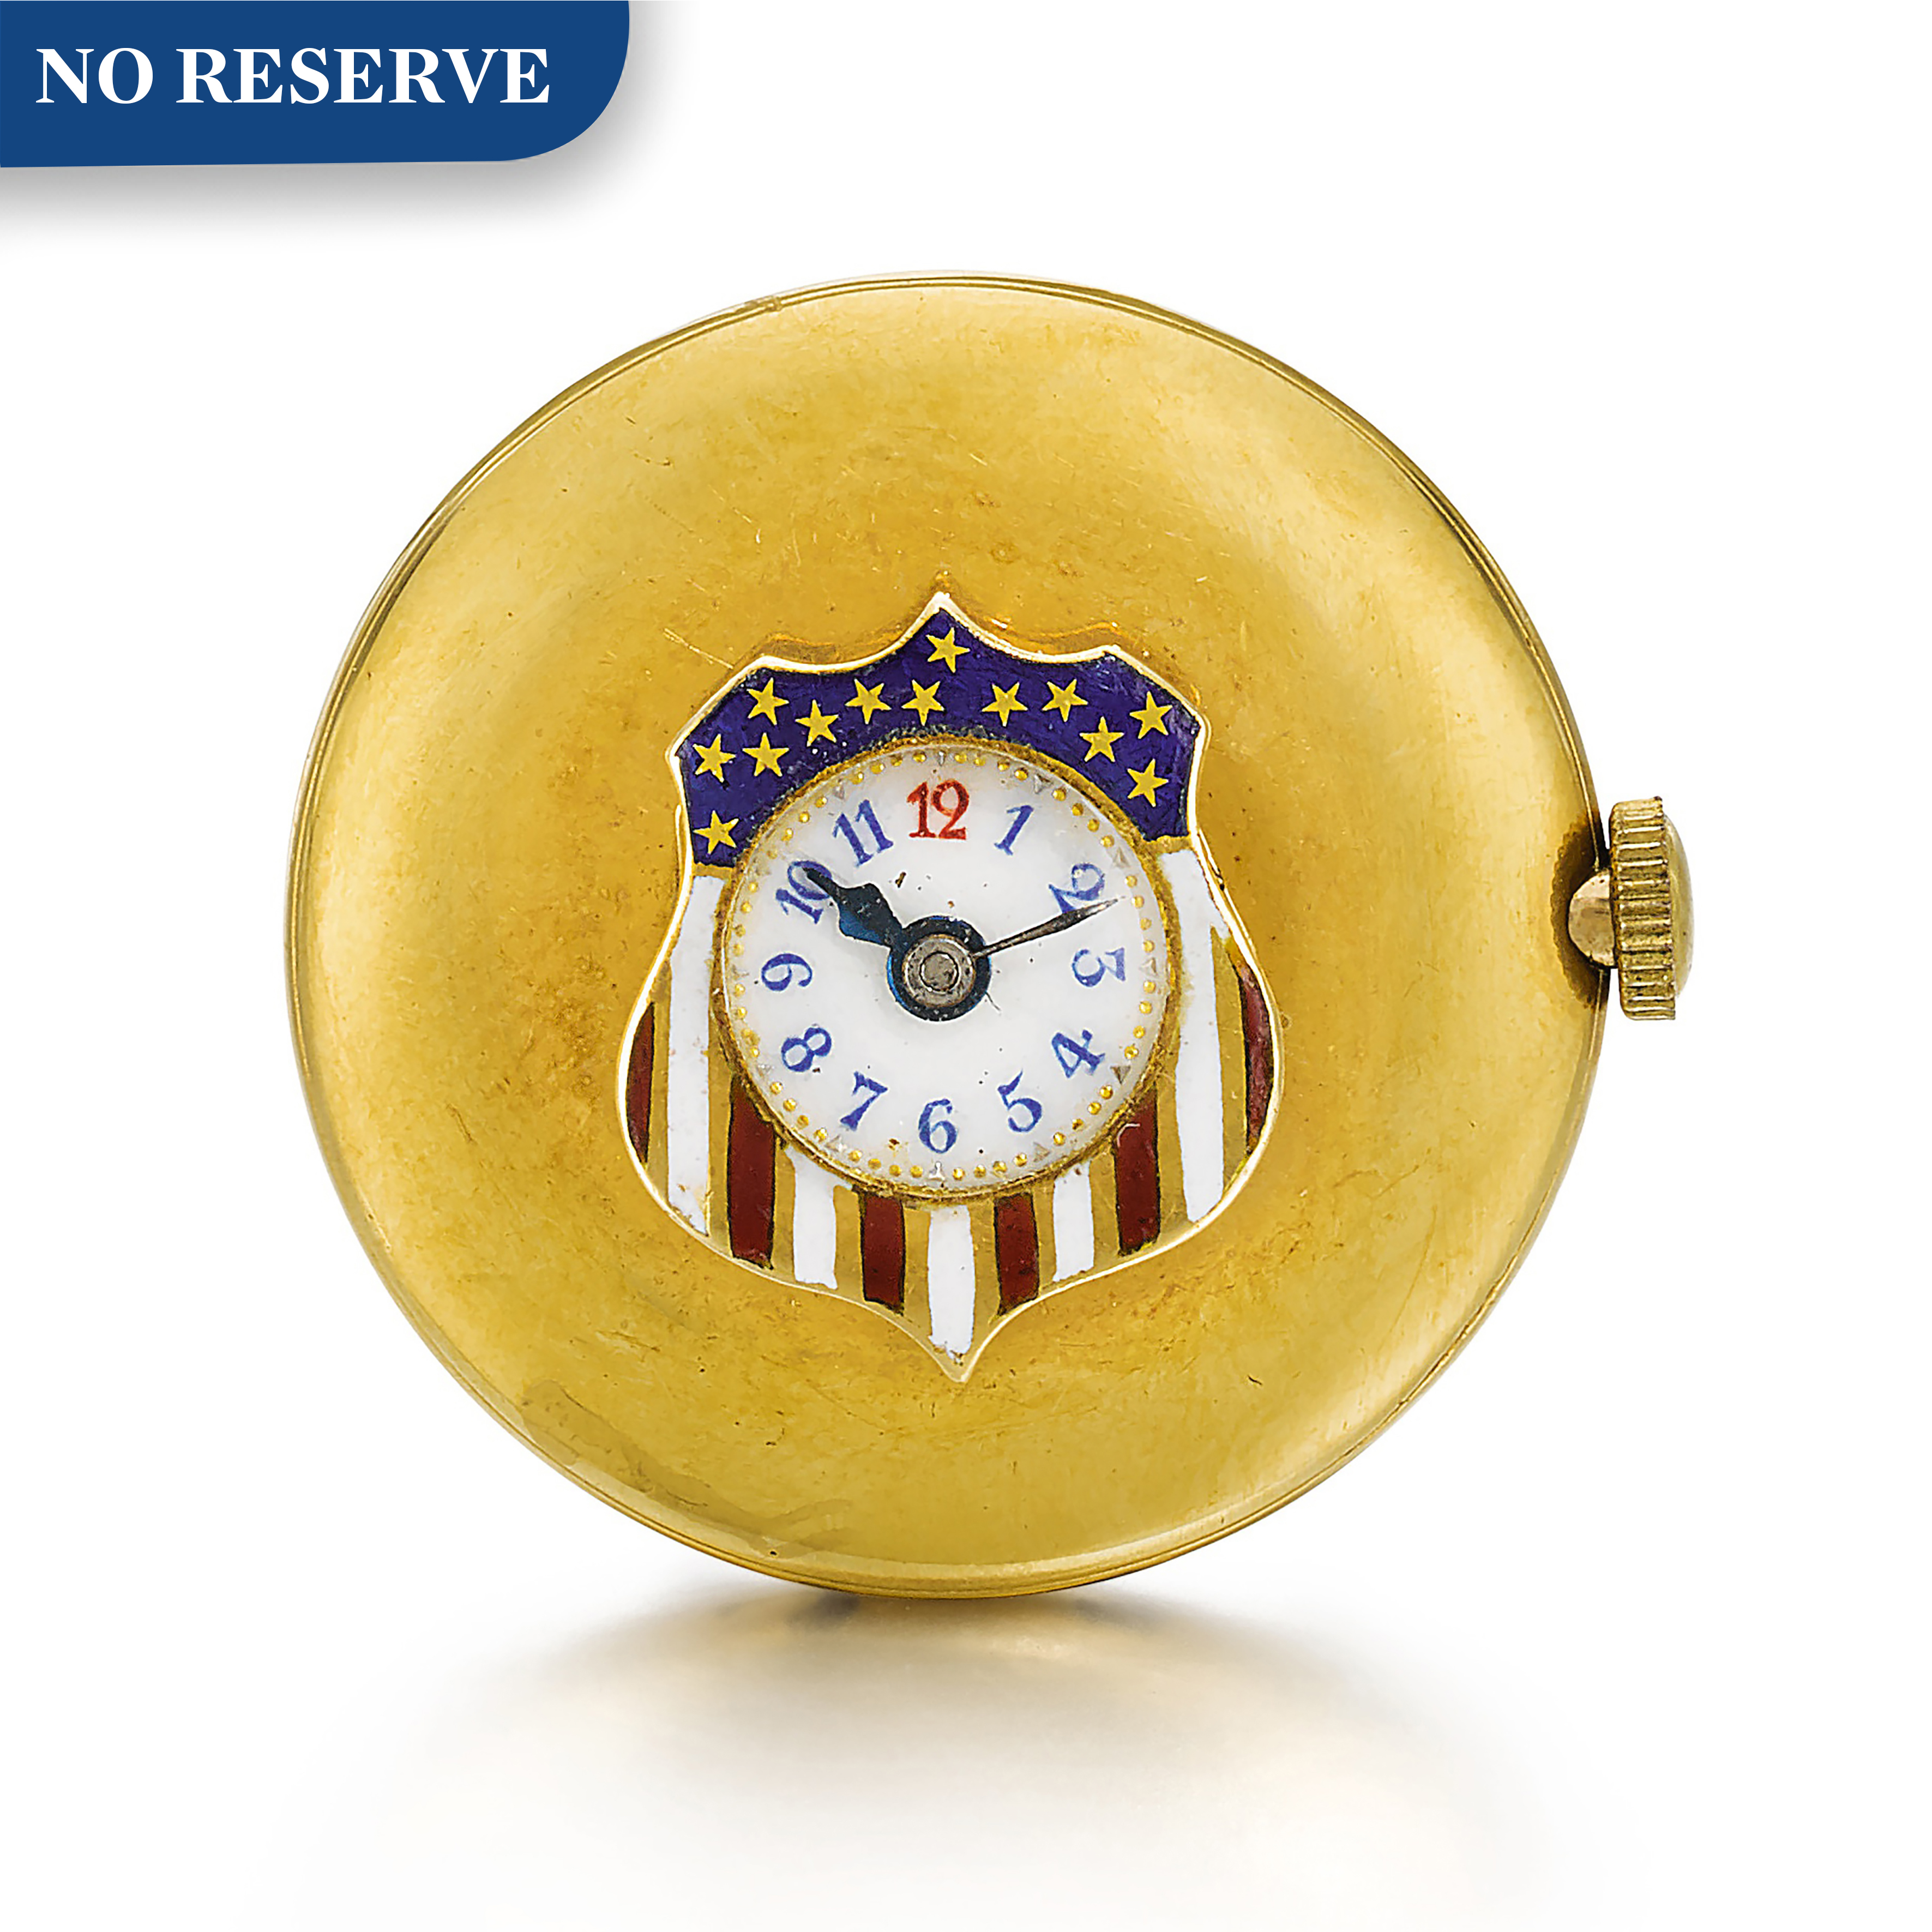 View full screen - View 1 of Lot 22. LONGINES   [浪琴]  | A GOLD AND ENAMEL BUTTON HOLE WATCH IN THE SHAPE OF A STYLISED AMERICAN FLAG  CIRCA 1910  [ 黃金畫琺瑯懷錶備袖珍錶盤、飾美國國旗圖案,年份約1910].